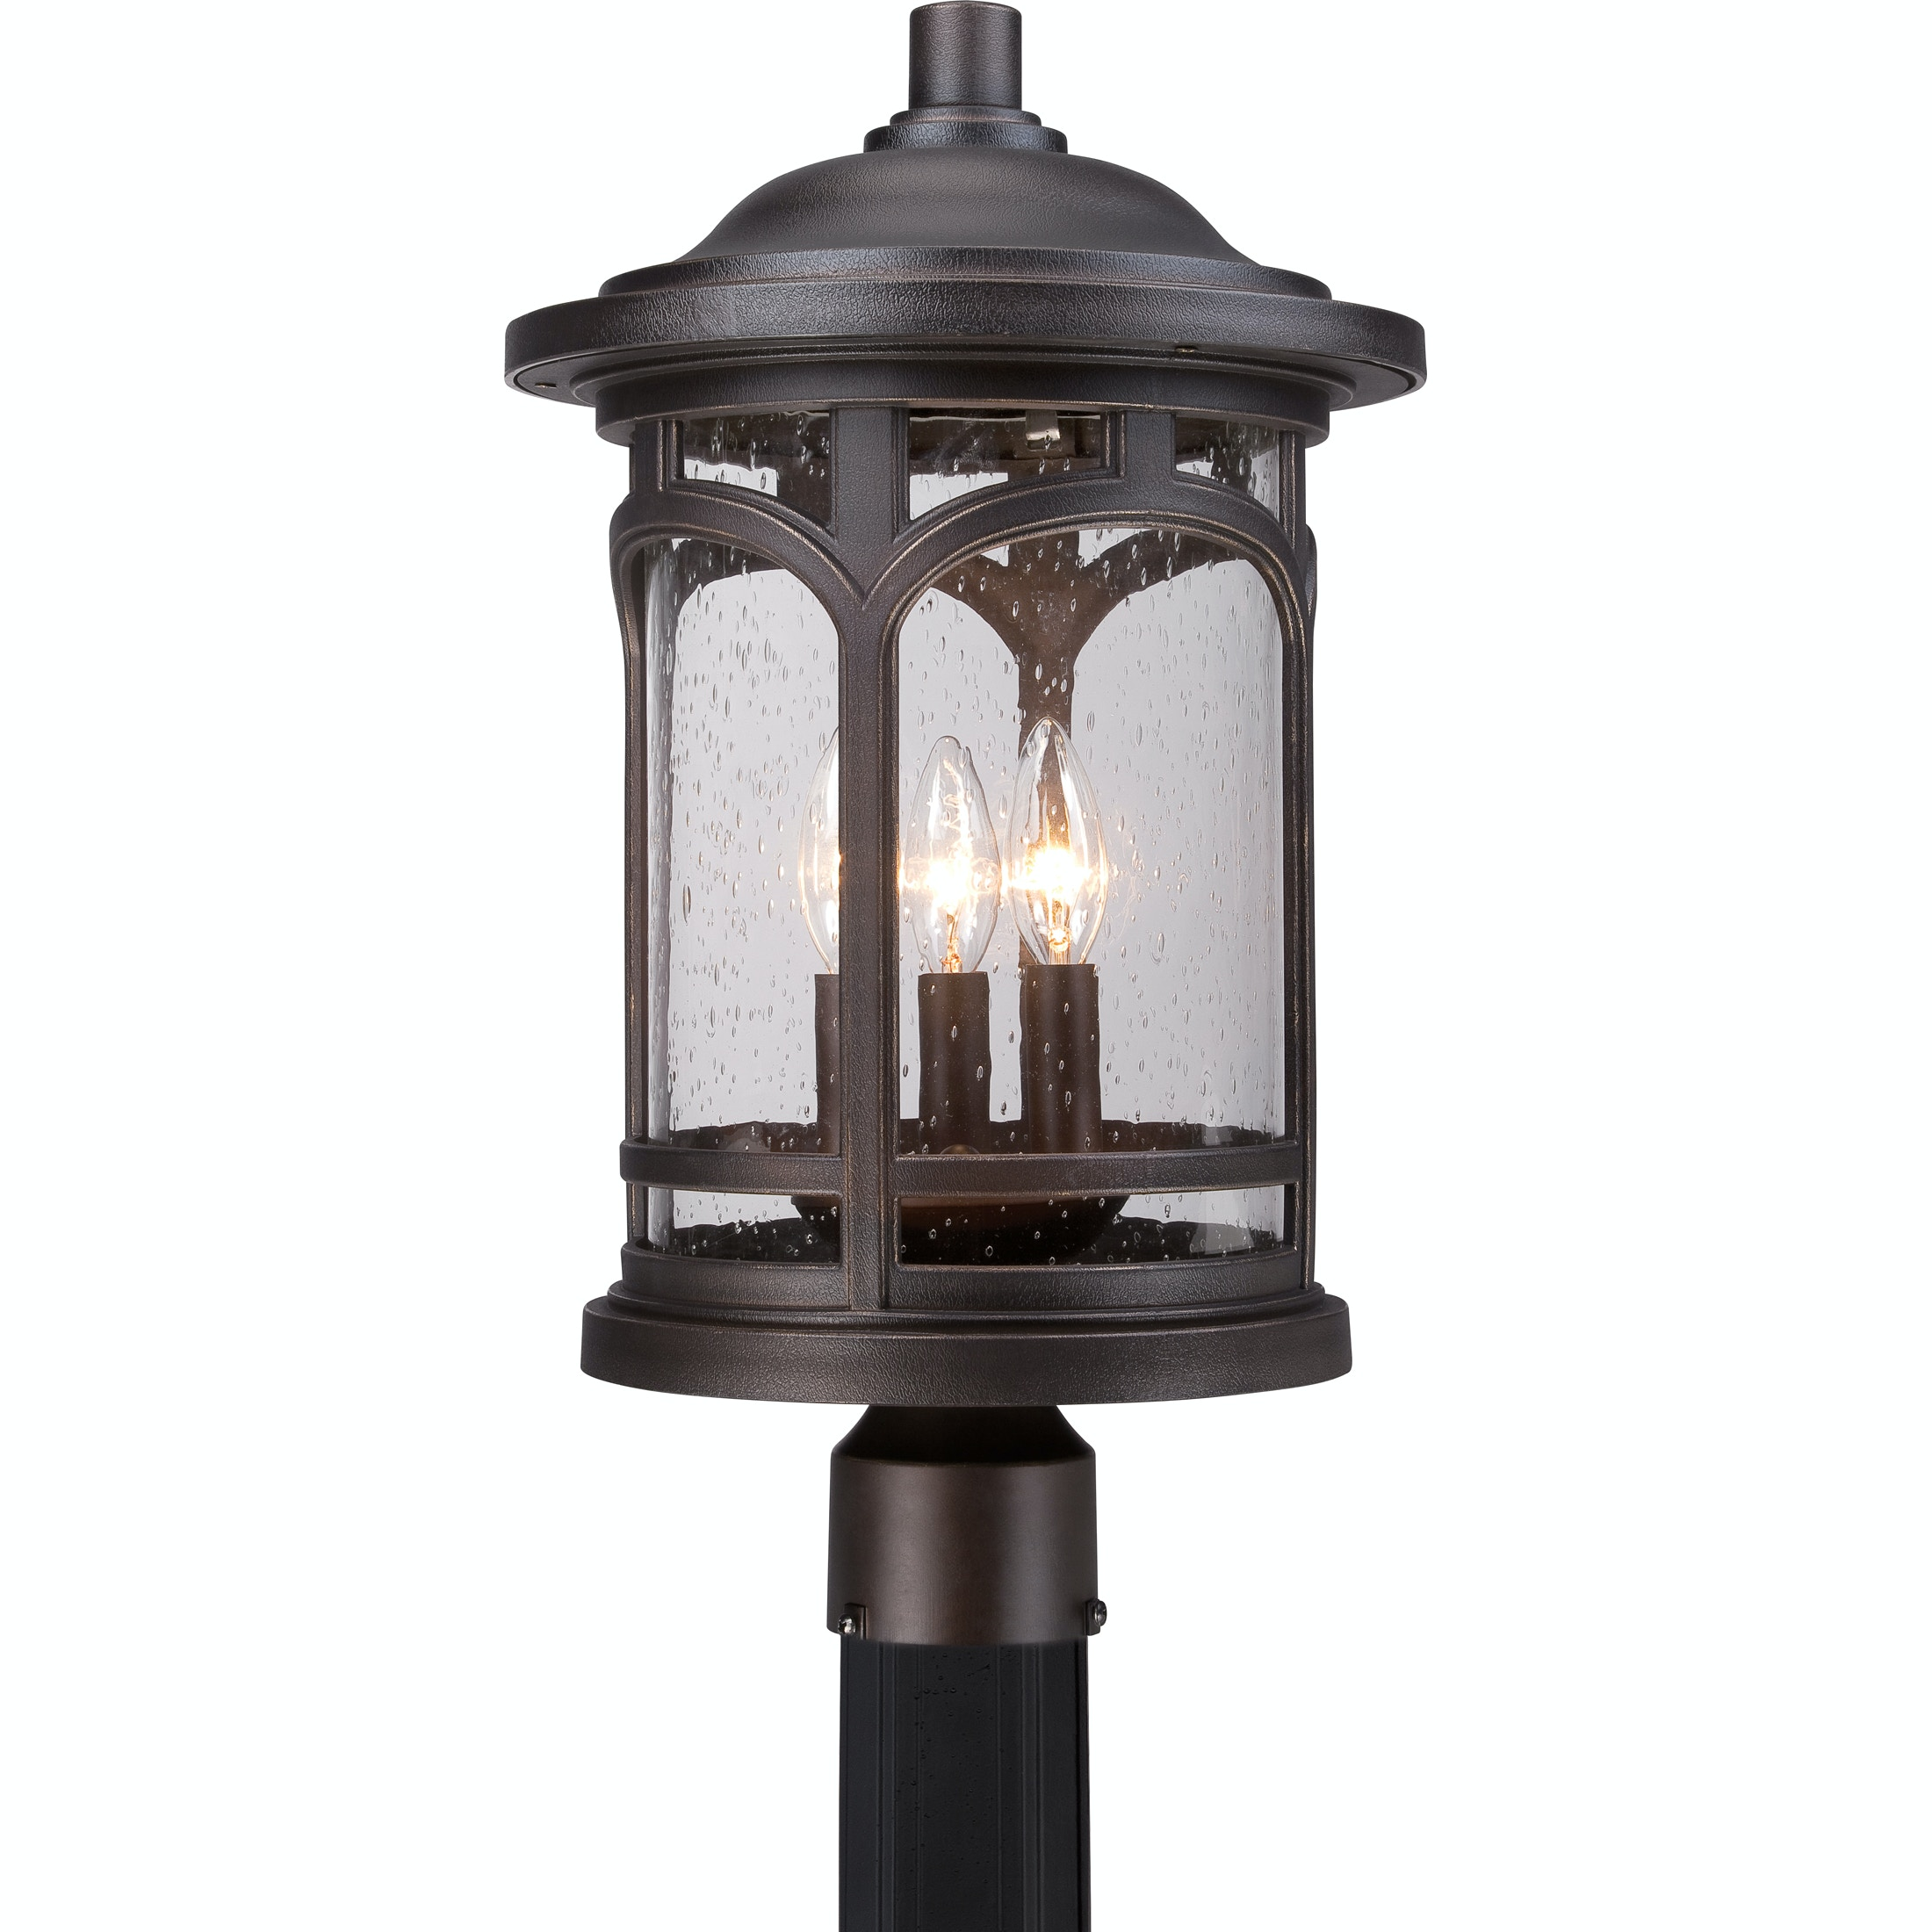 Netmasculine Lamps : Quoizel OutdoorPatio Outdoor Lantern MBH9011PN - Lynch Furniture ...